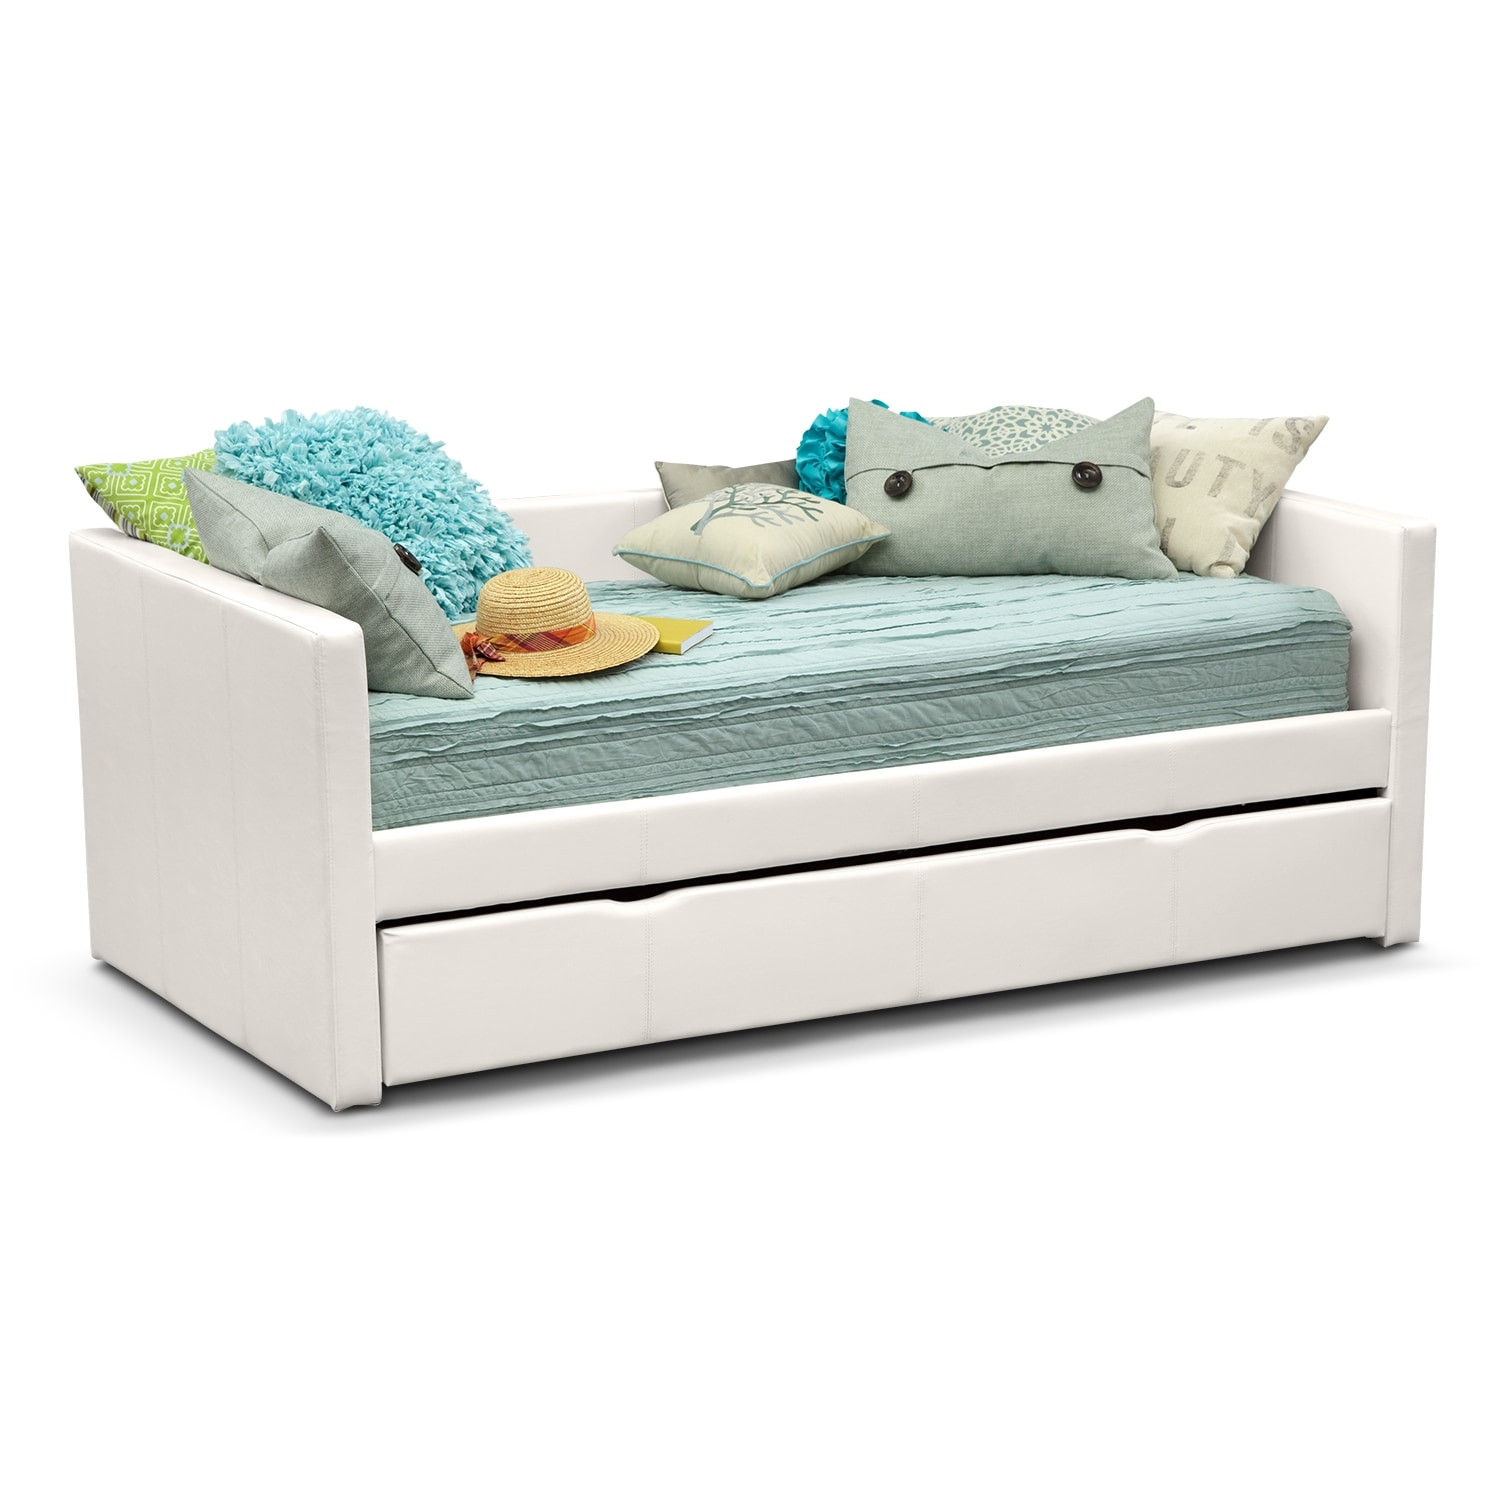 Carey Twin Daybed with Trundle White Value City Furniture : 308812 from www.valuecityfurniture.com size 1500 x 1500 jpeg 464kB